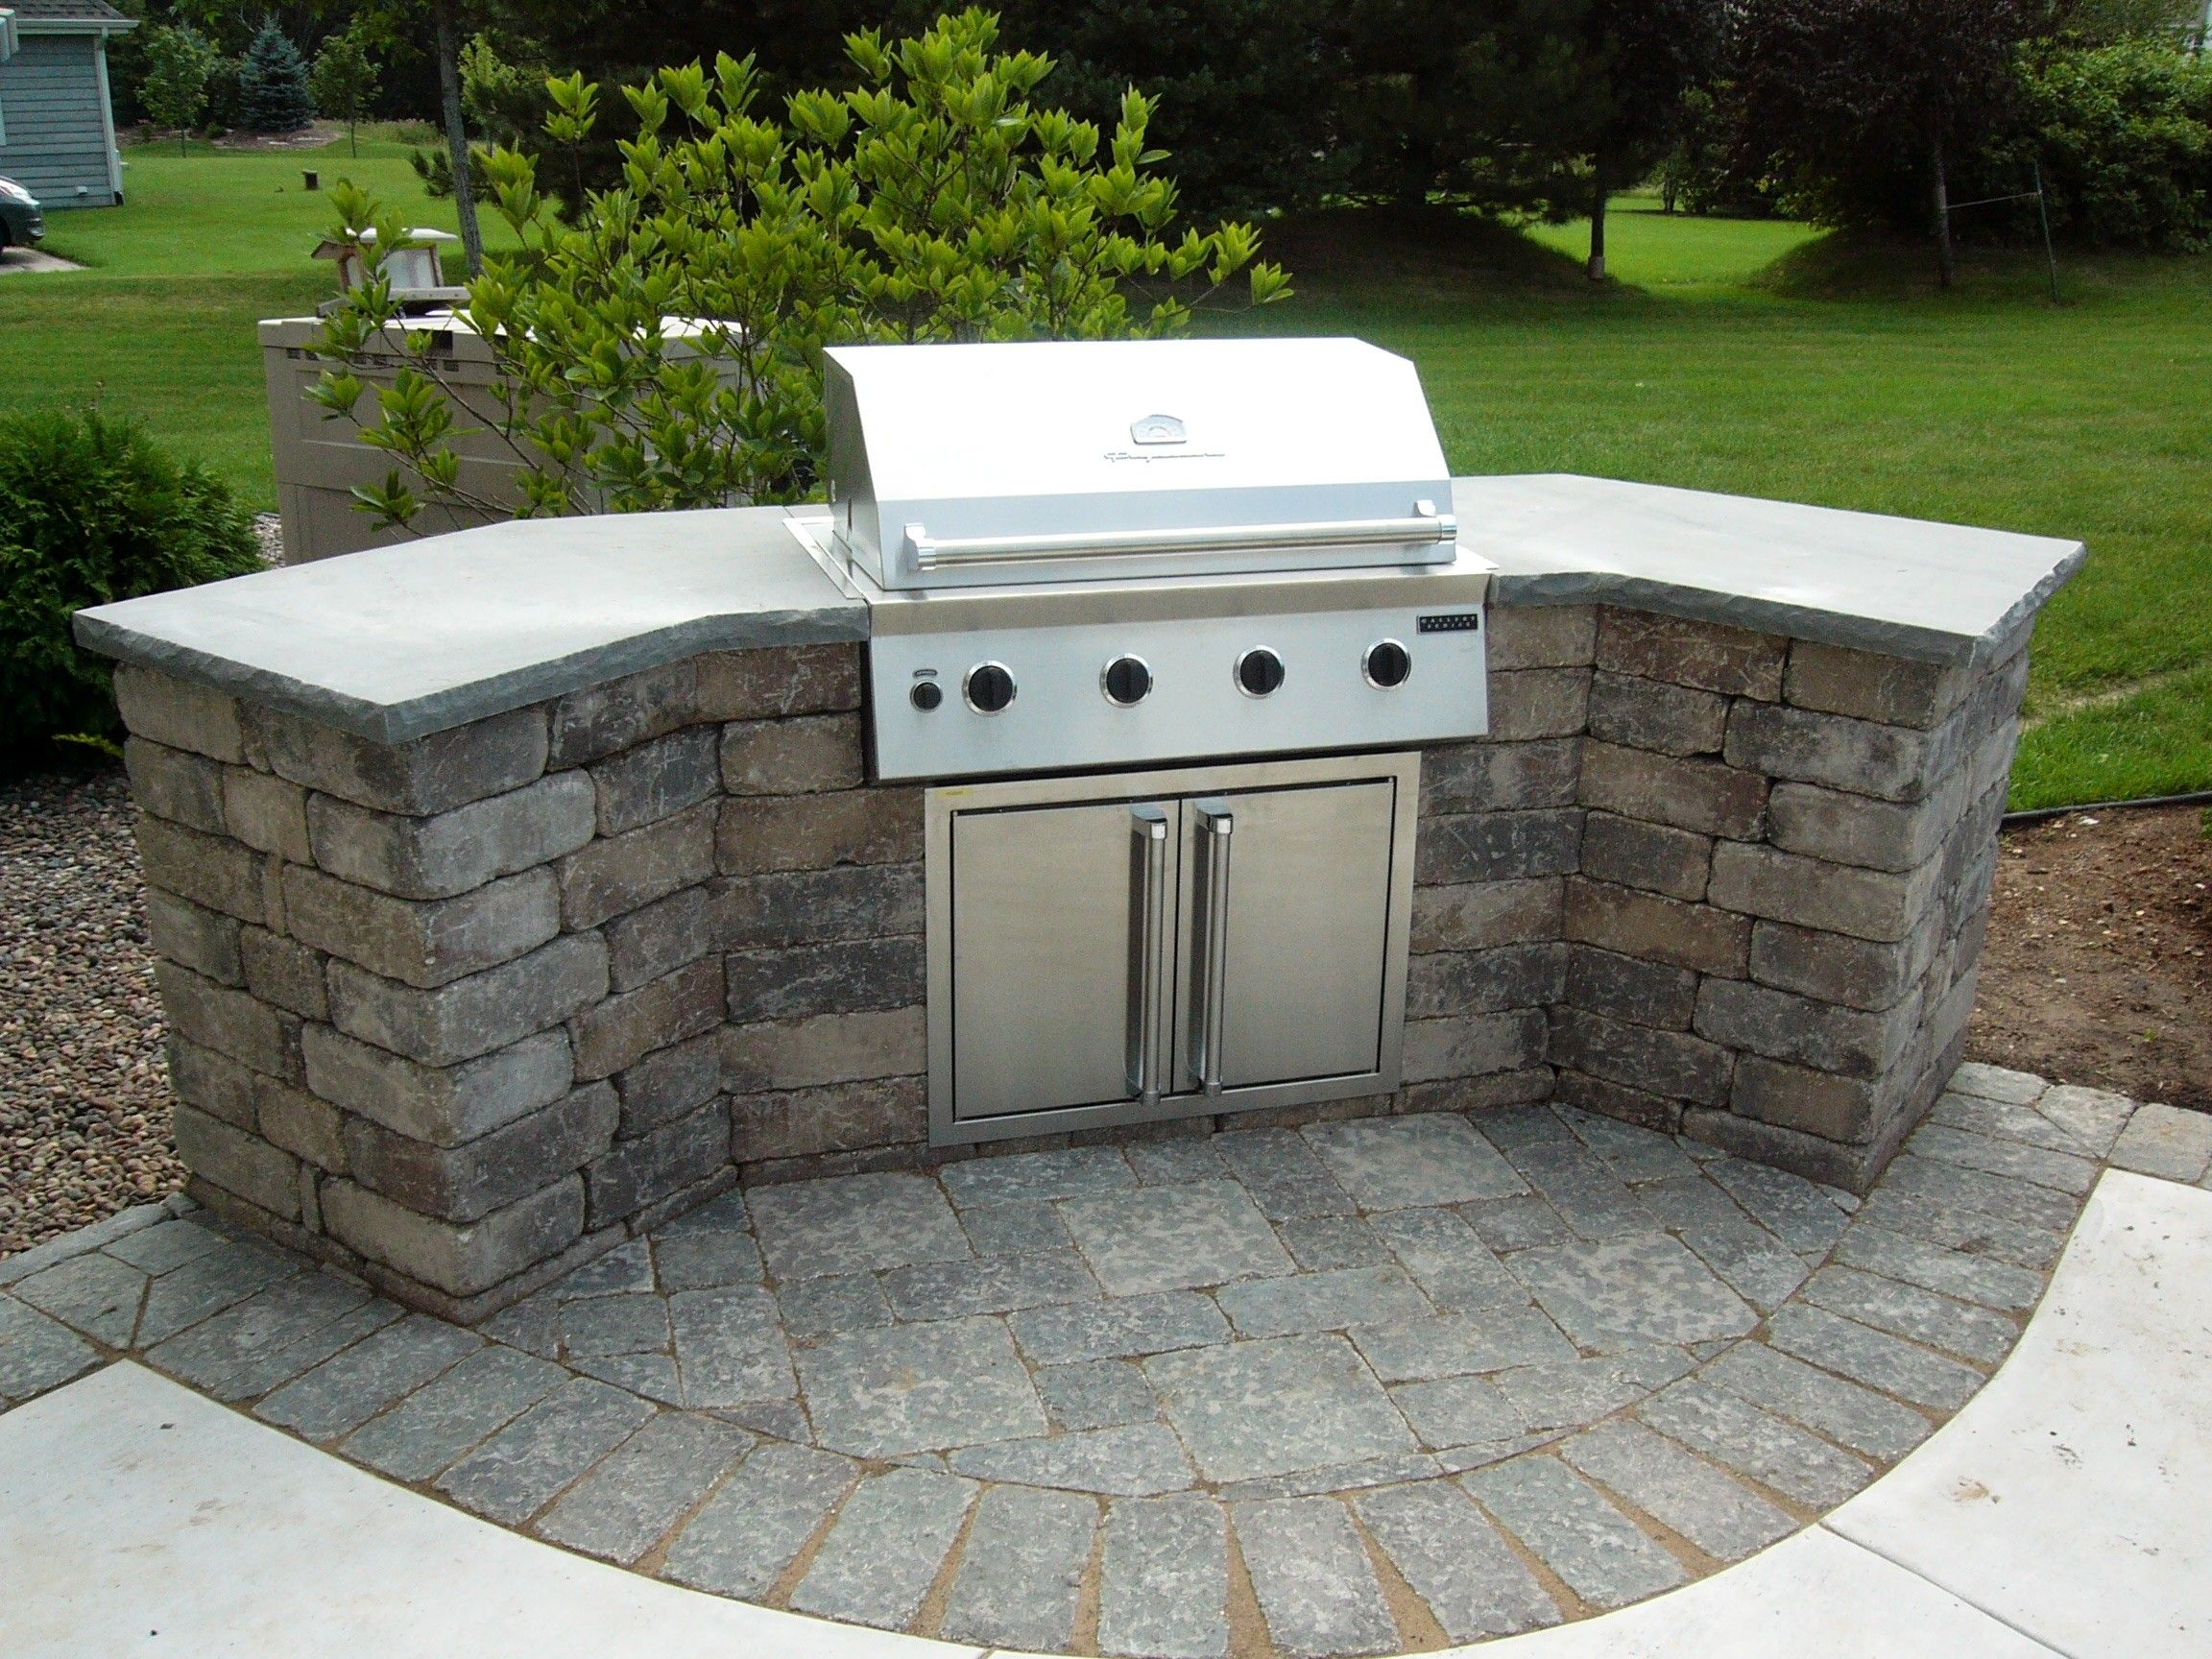 outdoor kitchen island Curved Stone Prefab Kitchen Island With Gray Concrete Countertop And Barbeque Grill On Backyard Garden